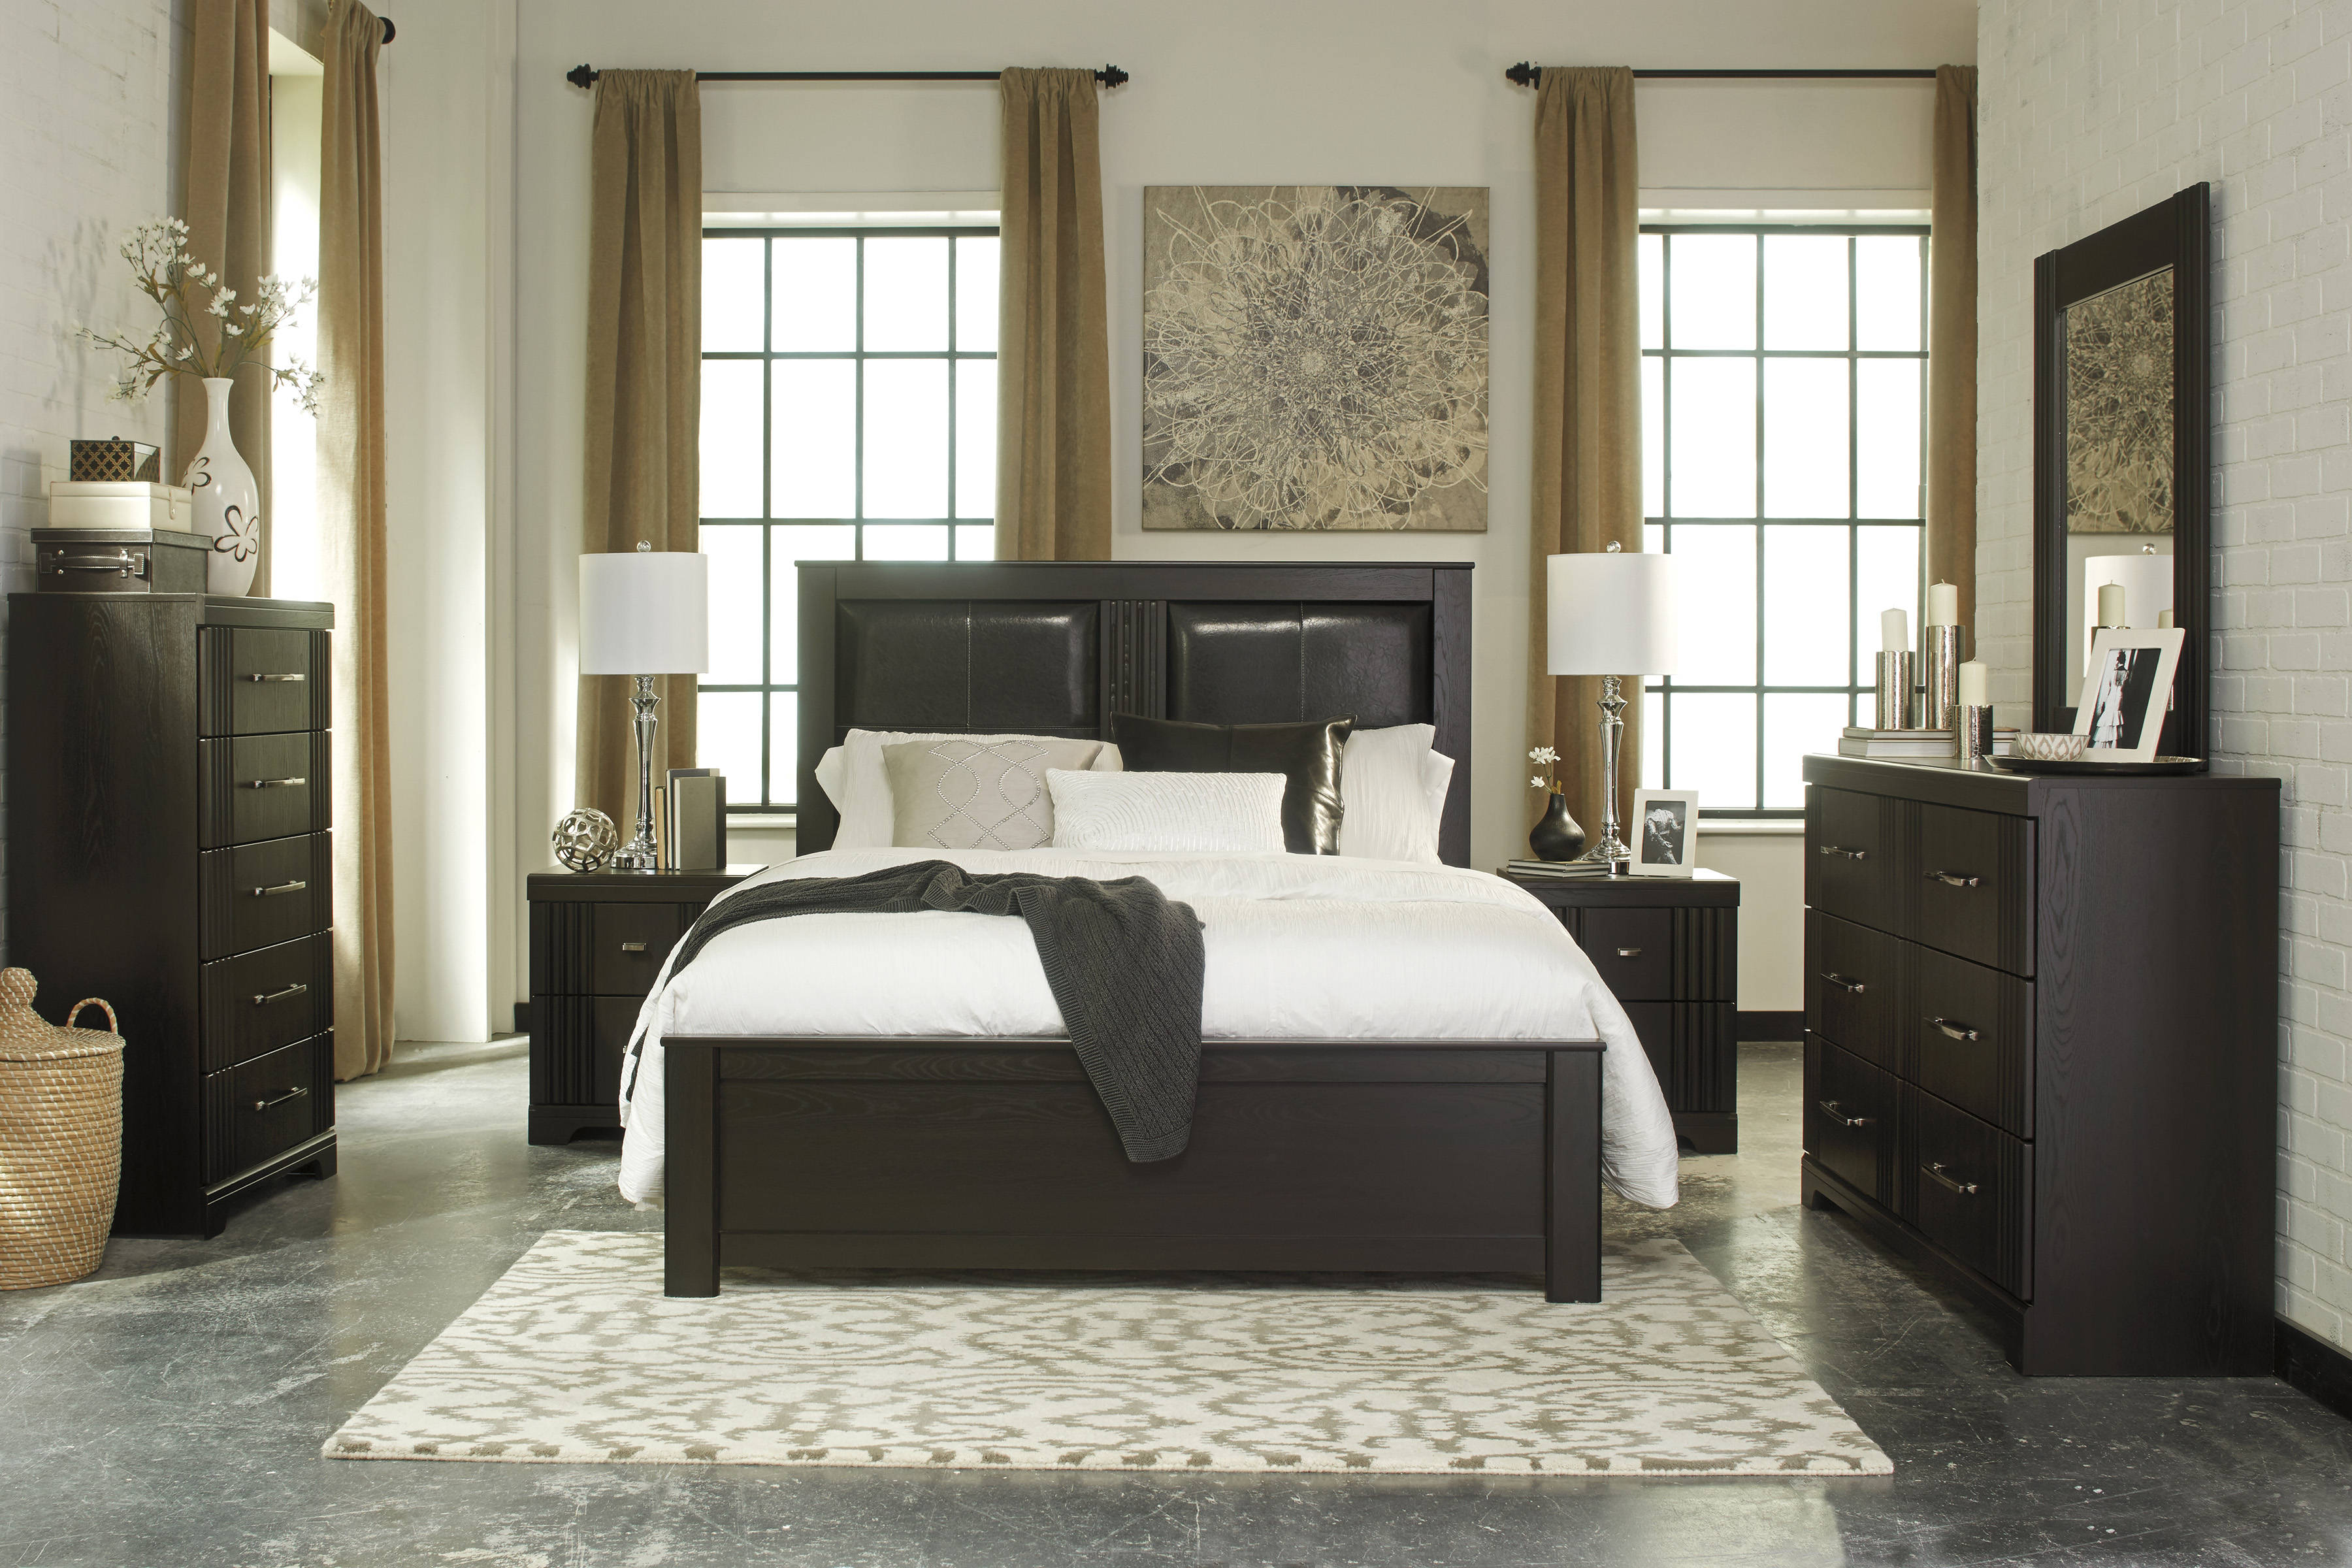 my story grand design free best unique luxury furniture apartment ashley bedroom of queen sets clearance